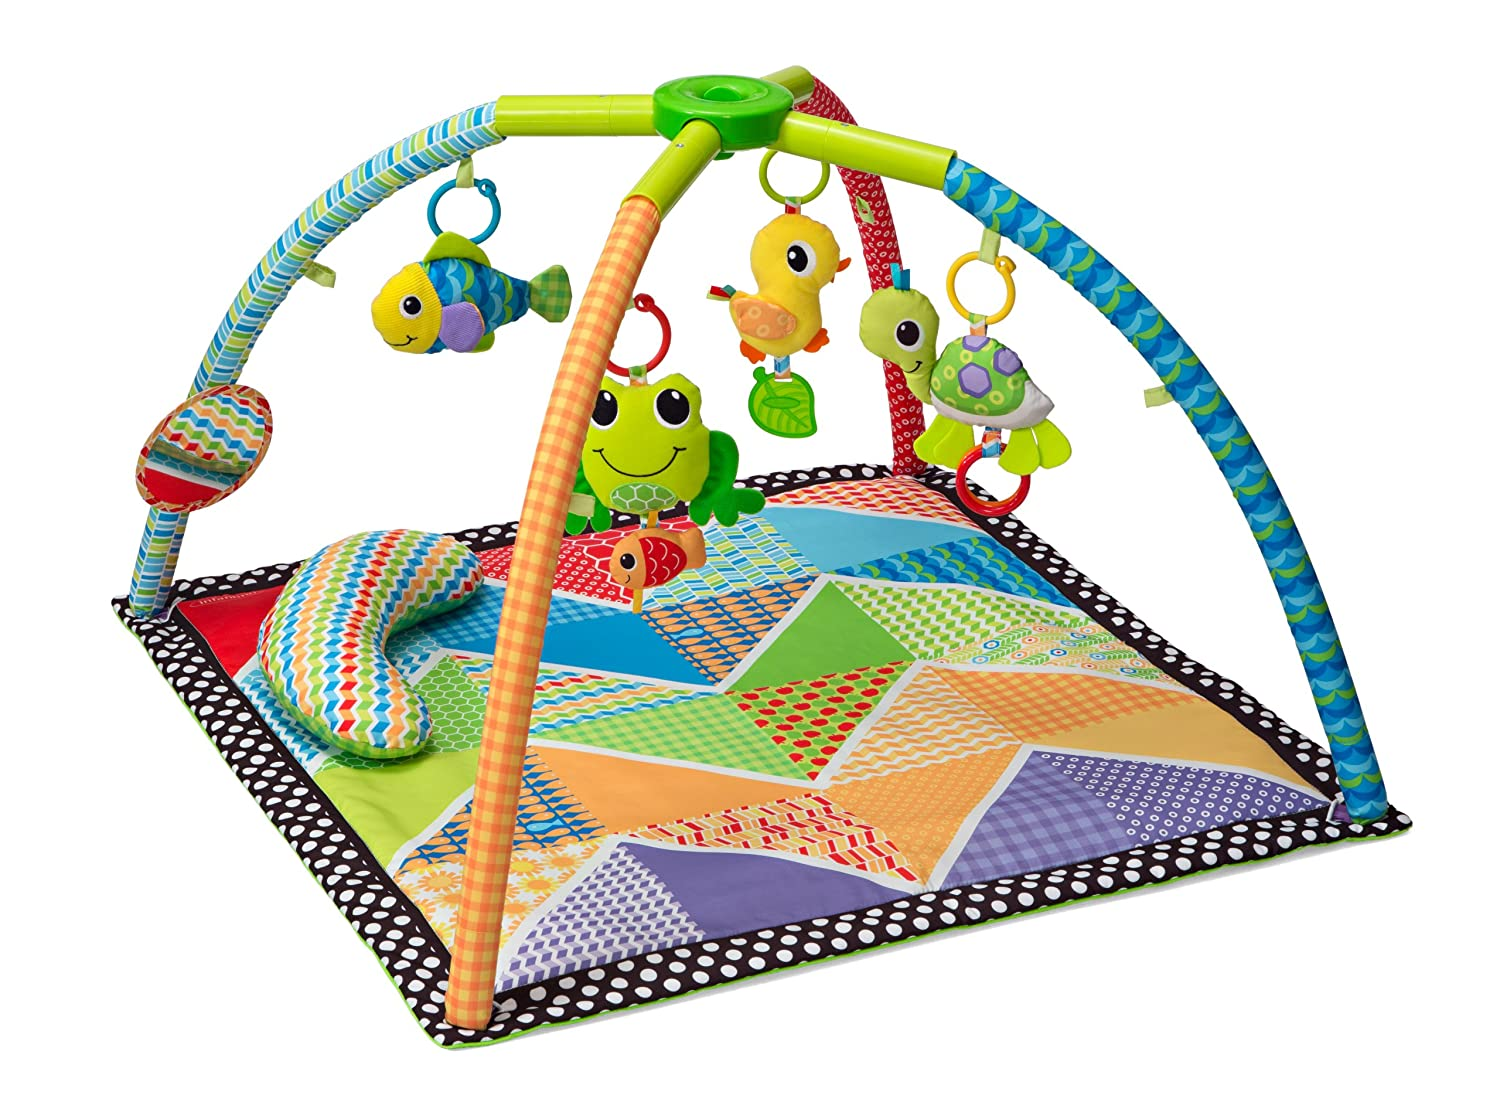 Infantino Pond Pals Twist and Fold Activity Gym and Play Mat 206-853